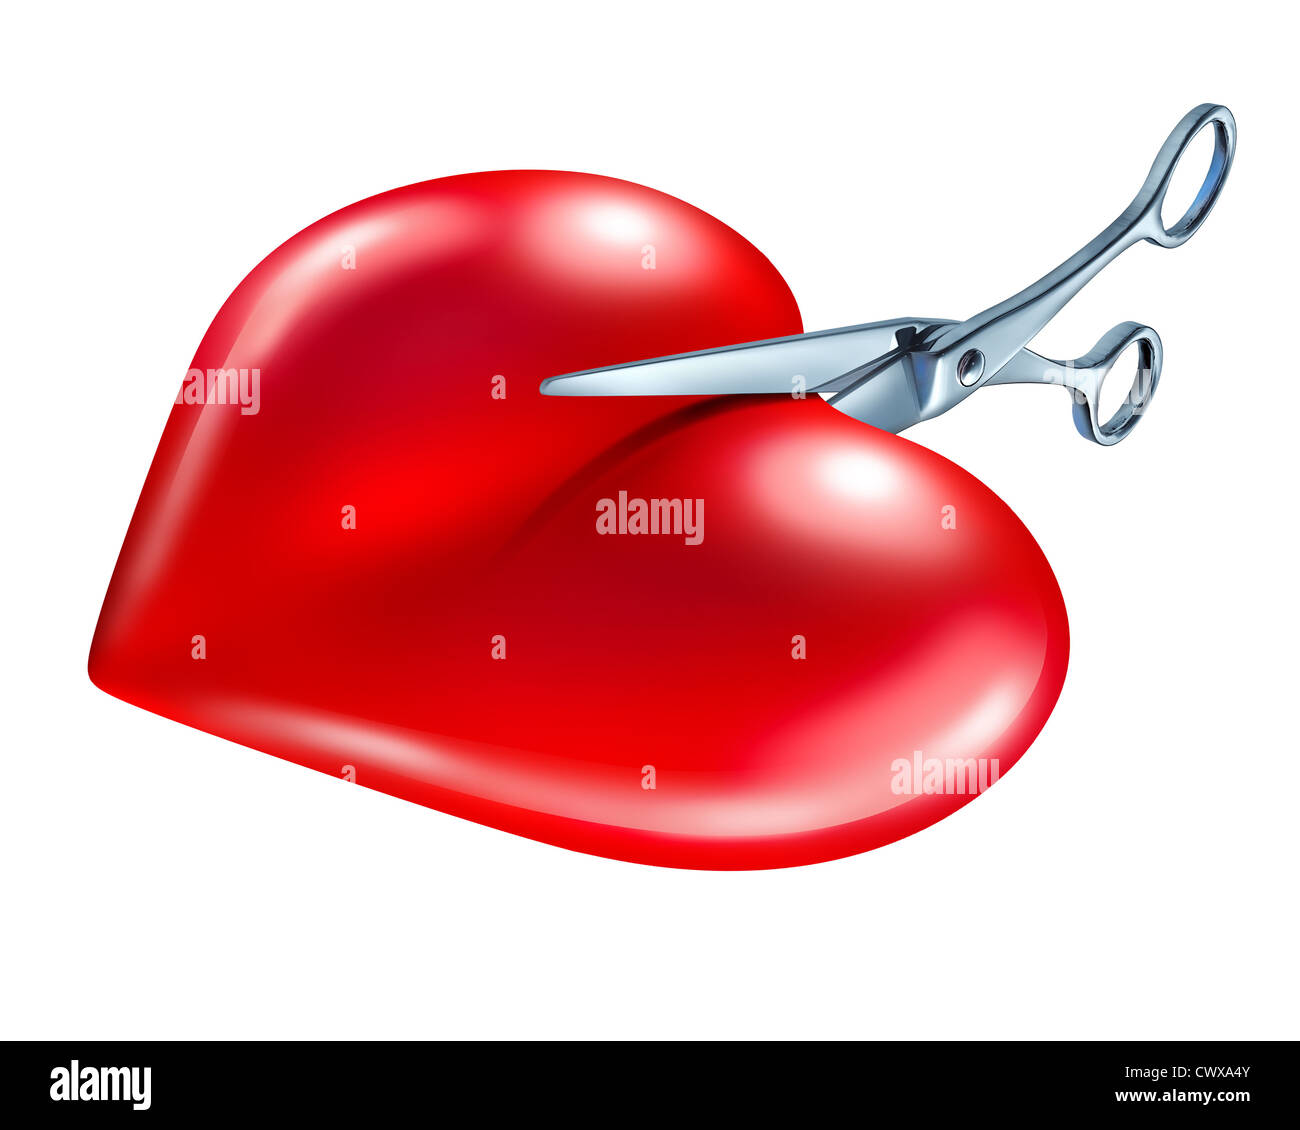 Breaking off and break up symbol of couple in crisis ending a love breaking off and break up symbol of couple in crisis ending a love relationship as a rejection and painful seperation of a romantic partnership as a red biocorpaavc Choice Image